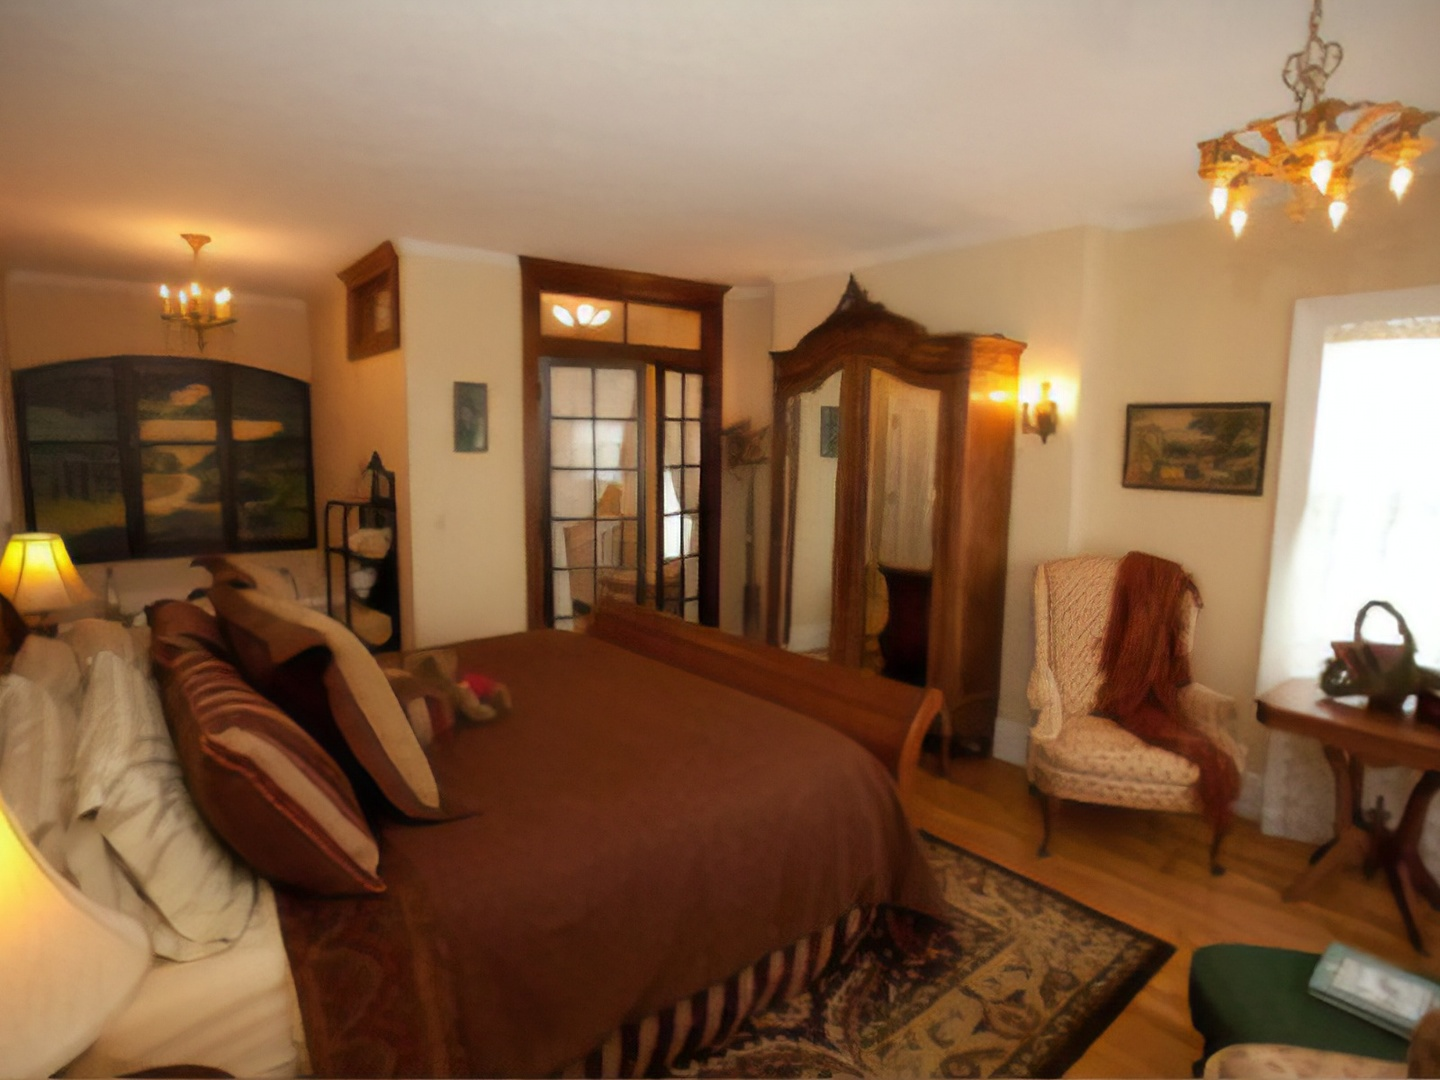 A bedroom with a view of a living room at Westphal Mansion Inn Bed and Breakfast.